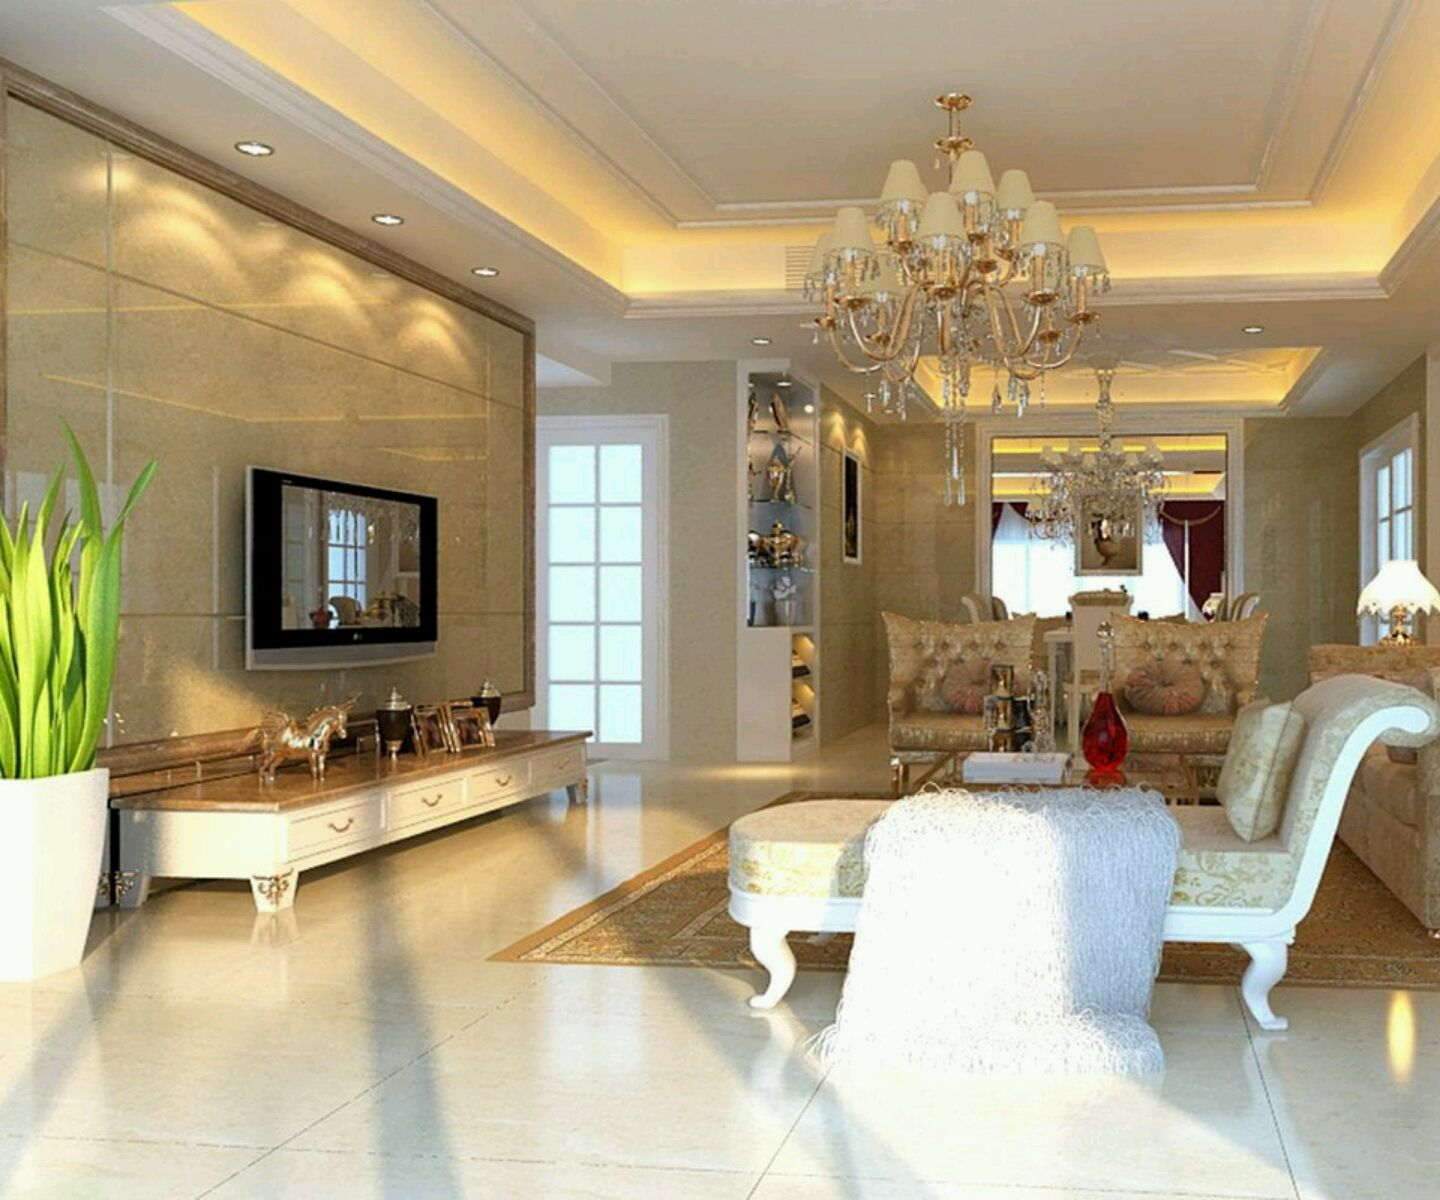 Interior Design Ideas At Home: Luxury Homes Interior Decoration Living Room Designs Ideas